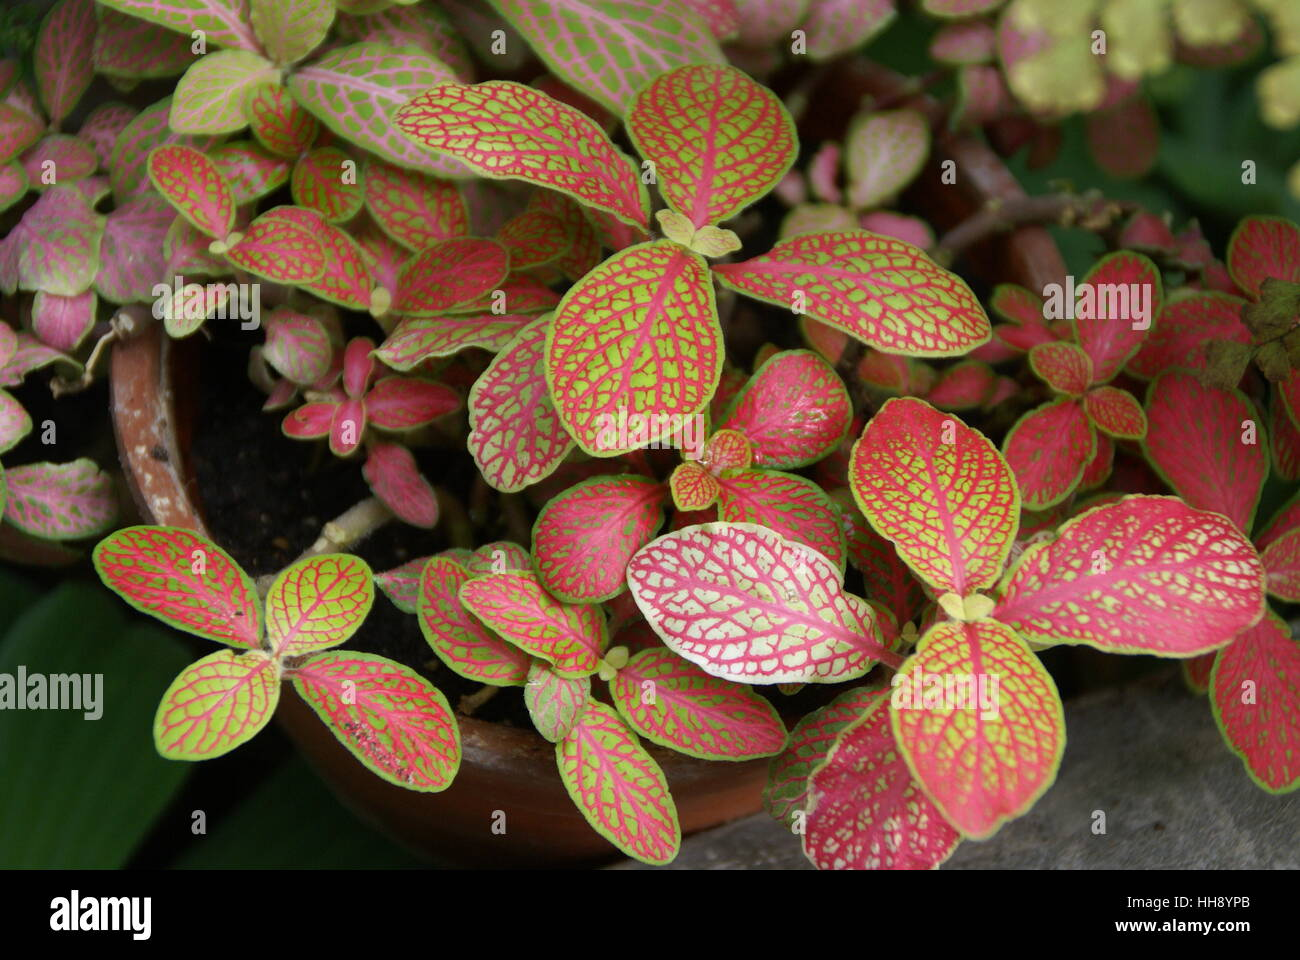 Colorful leaves in a botanical garden. - Stock Image